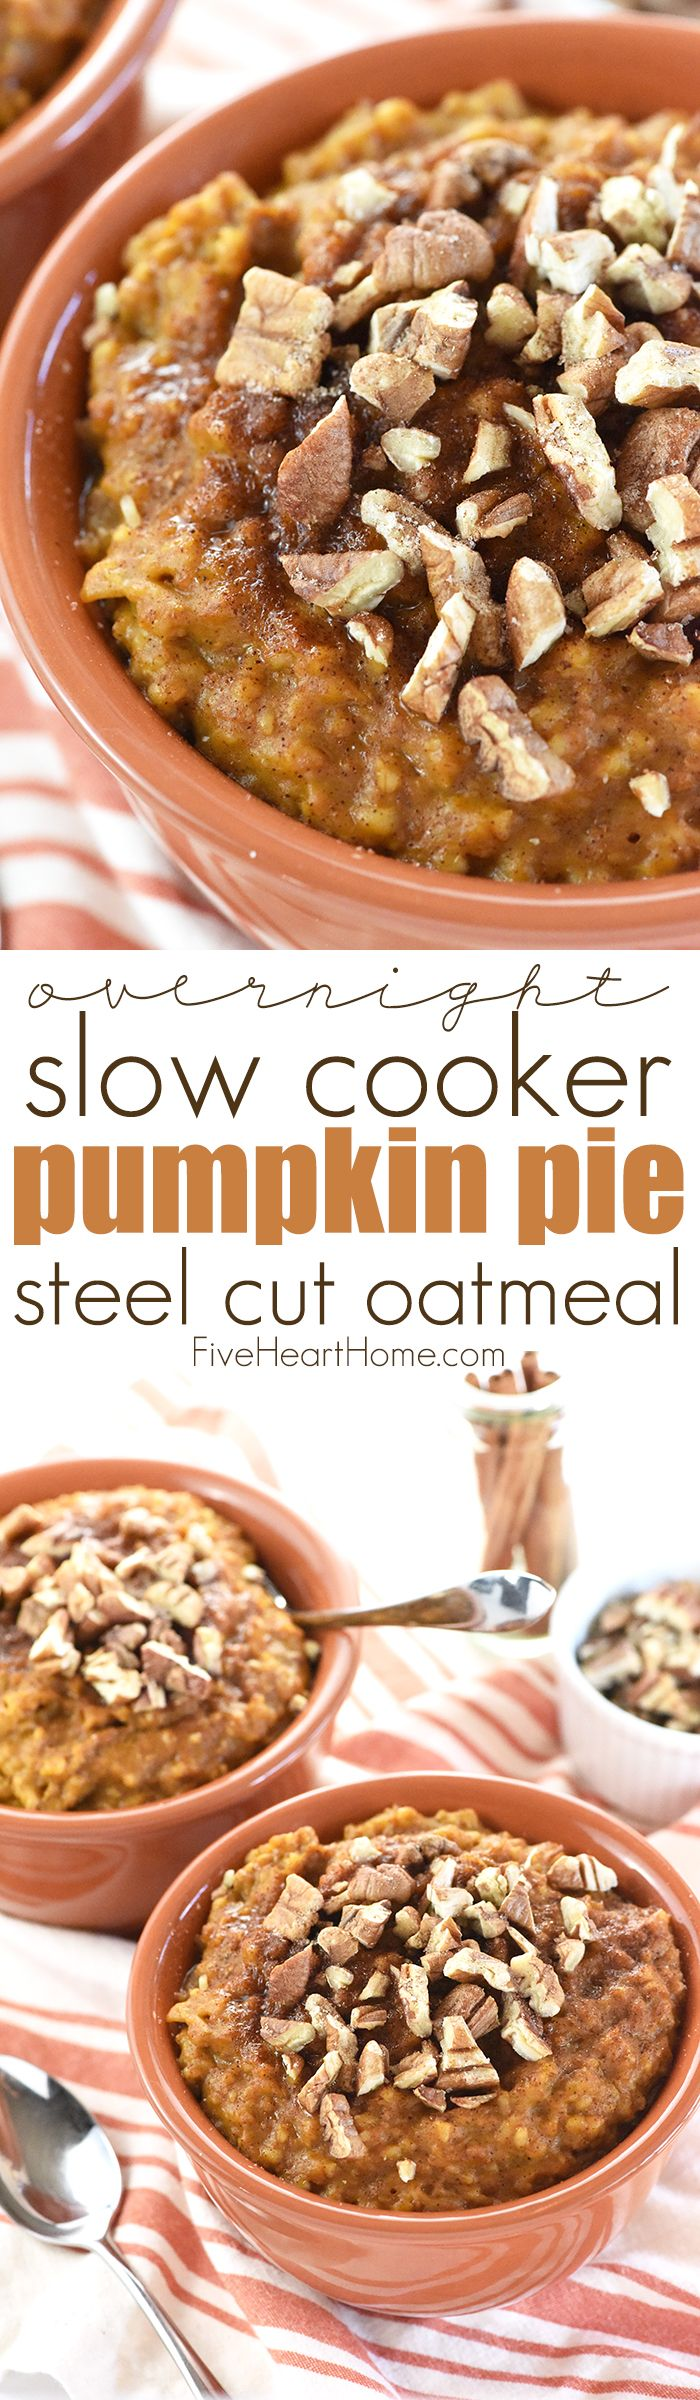 Overnight Slow Cooker Pumpkin Pie Steel Cut Oatmeal ~ wake up to a warm, wholesome breakfast with this easy overnight oatmeal, made in the crock pot and infused with pumpkin, maple syrup, cinnamon, and vanilla...and you won't want to miss the secret trick to prevent the edges from burning! | FiveHeartHome.com